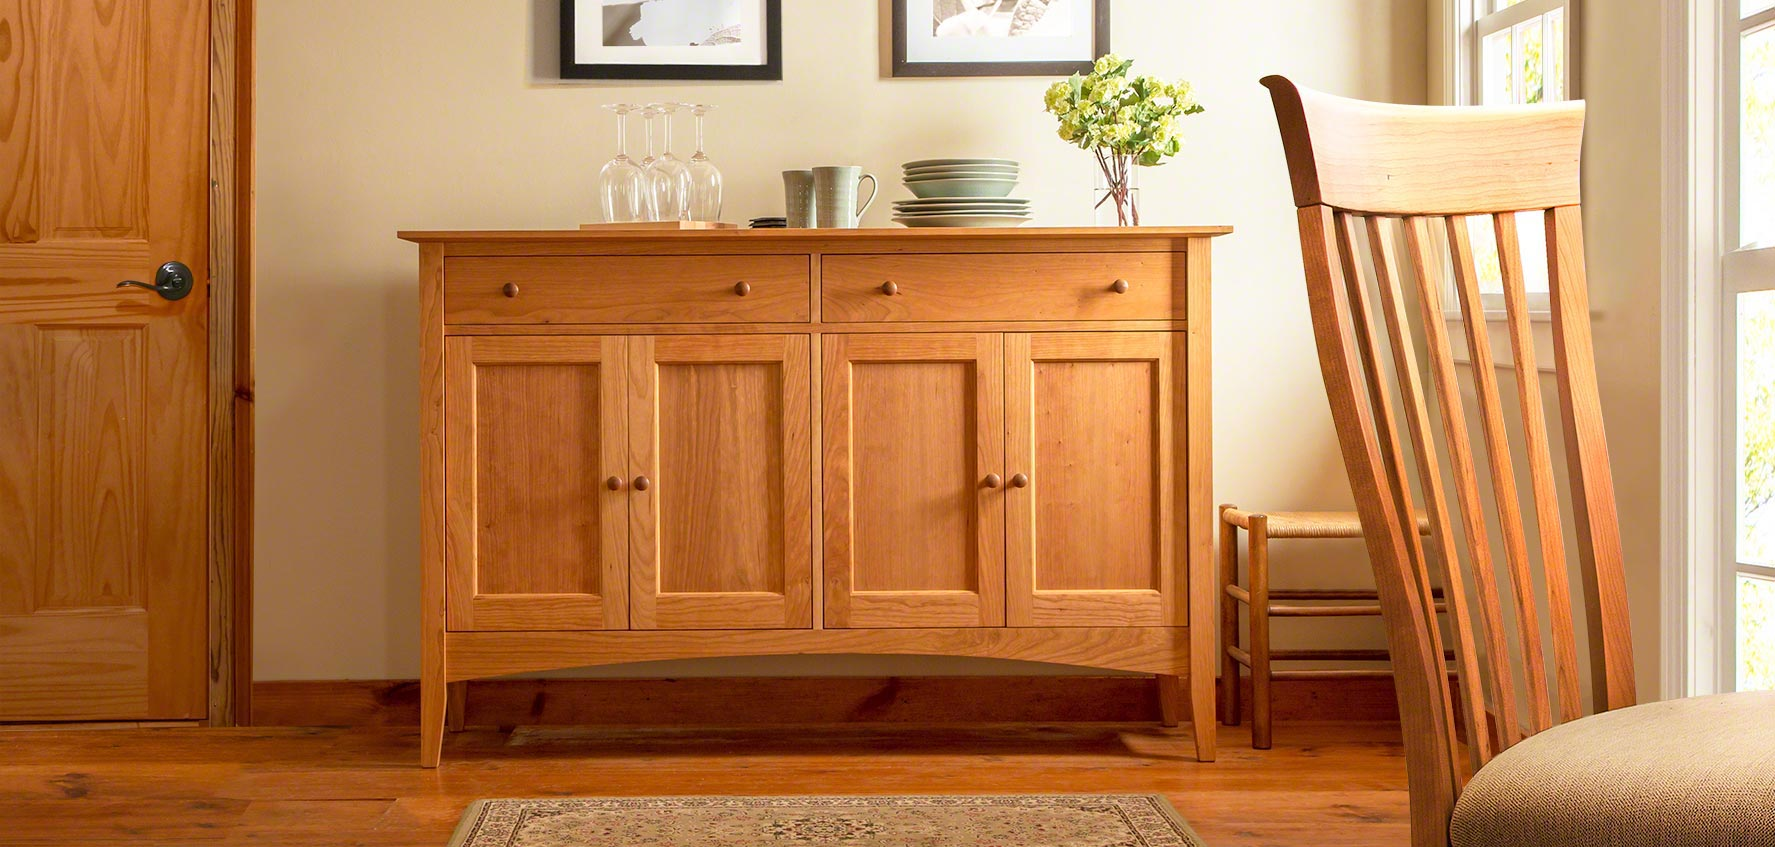 American Shaker Furniture Collection Vermont Woods Studios